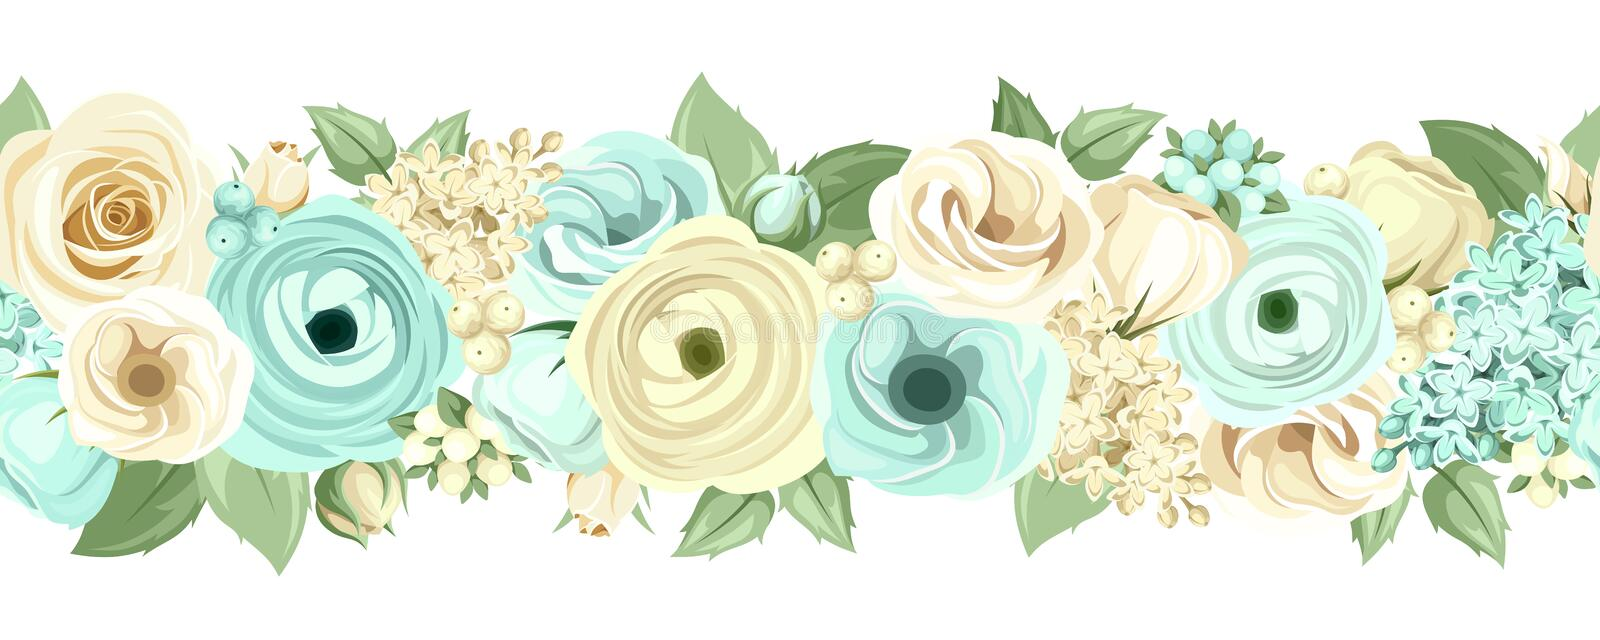 Horizontal seamless background with blue and white flowers. Vector illustration. stock illustration